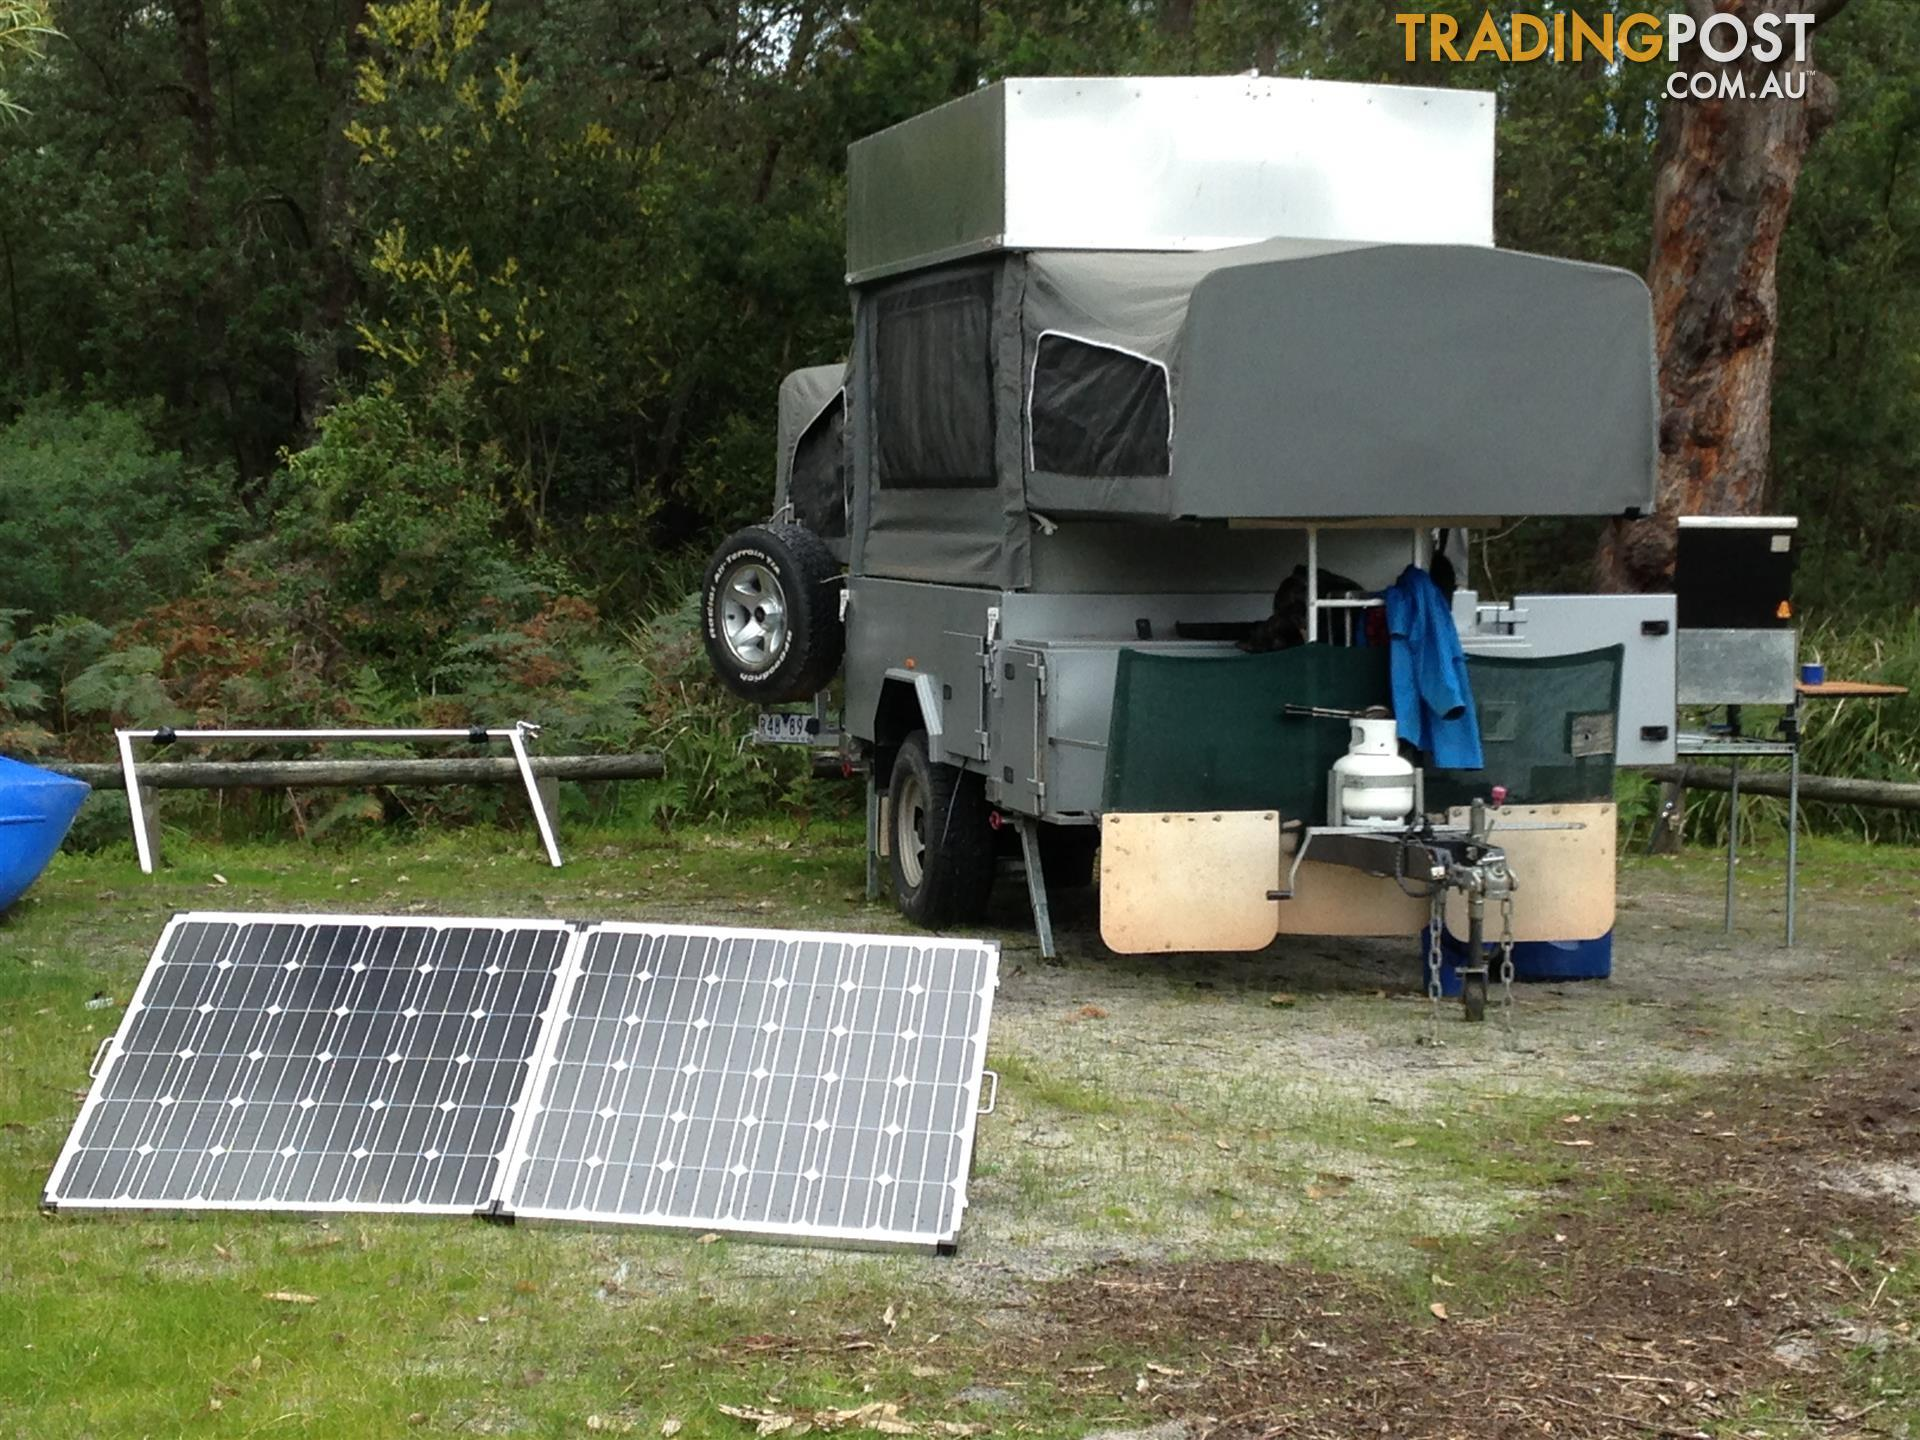 Awesome Caravan Amp Camper Trailer Covers In SPRINGVALE Victoria For Sale